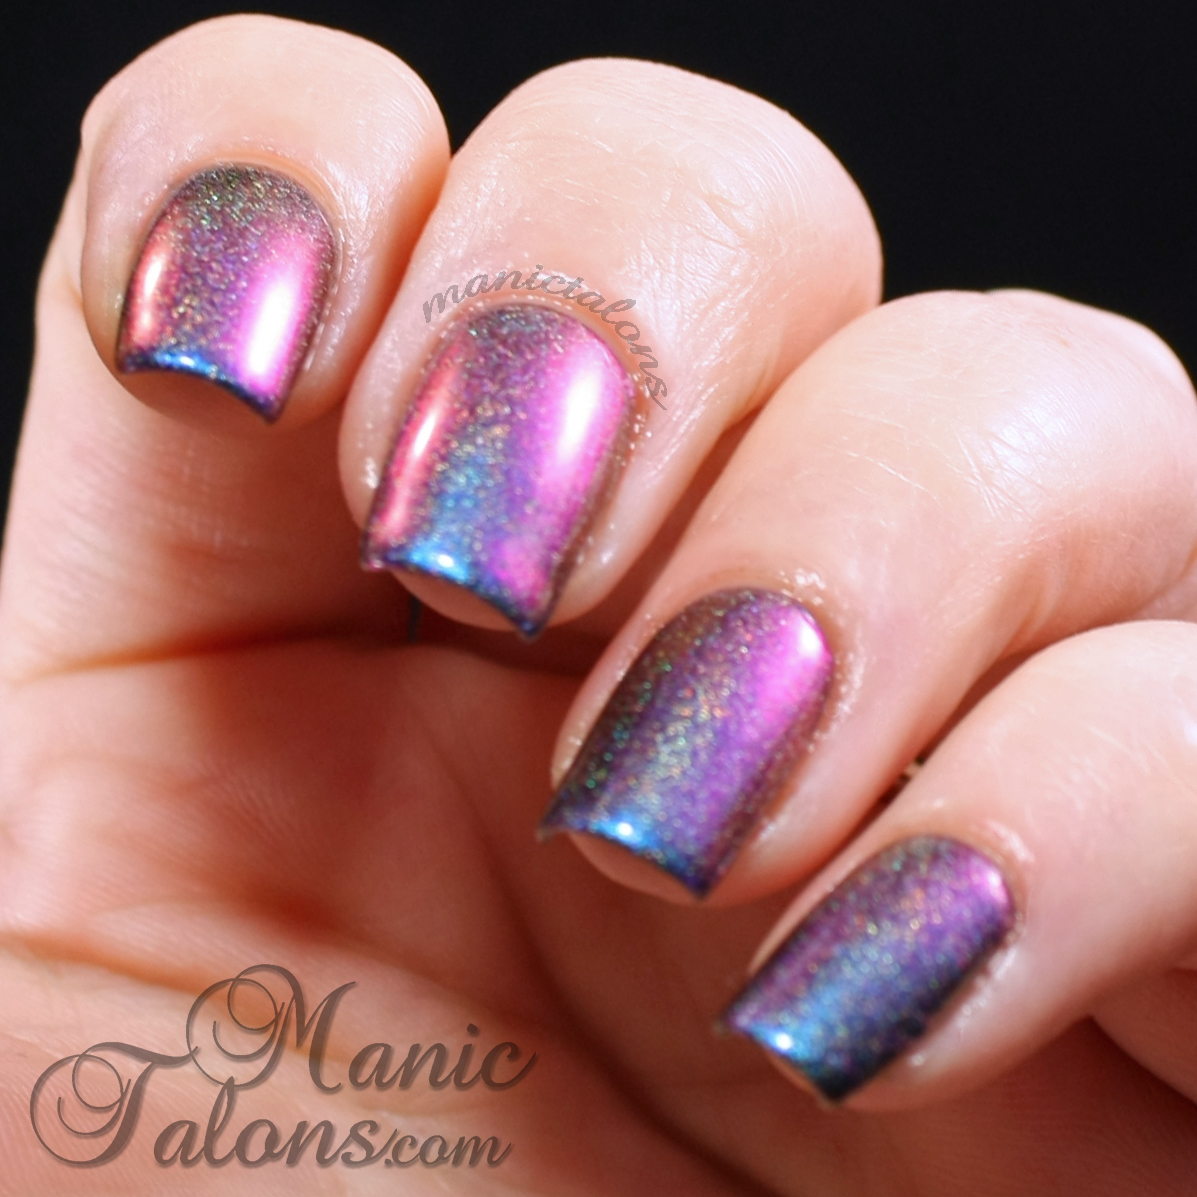 Girly Bits Go and Shake a Tower swatch over black gel polish